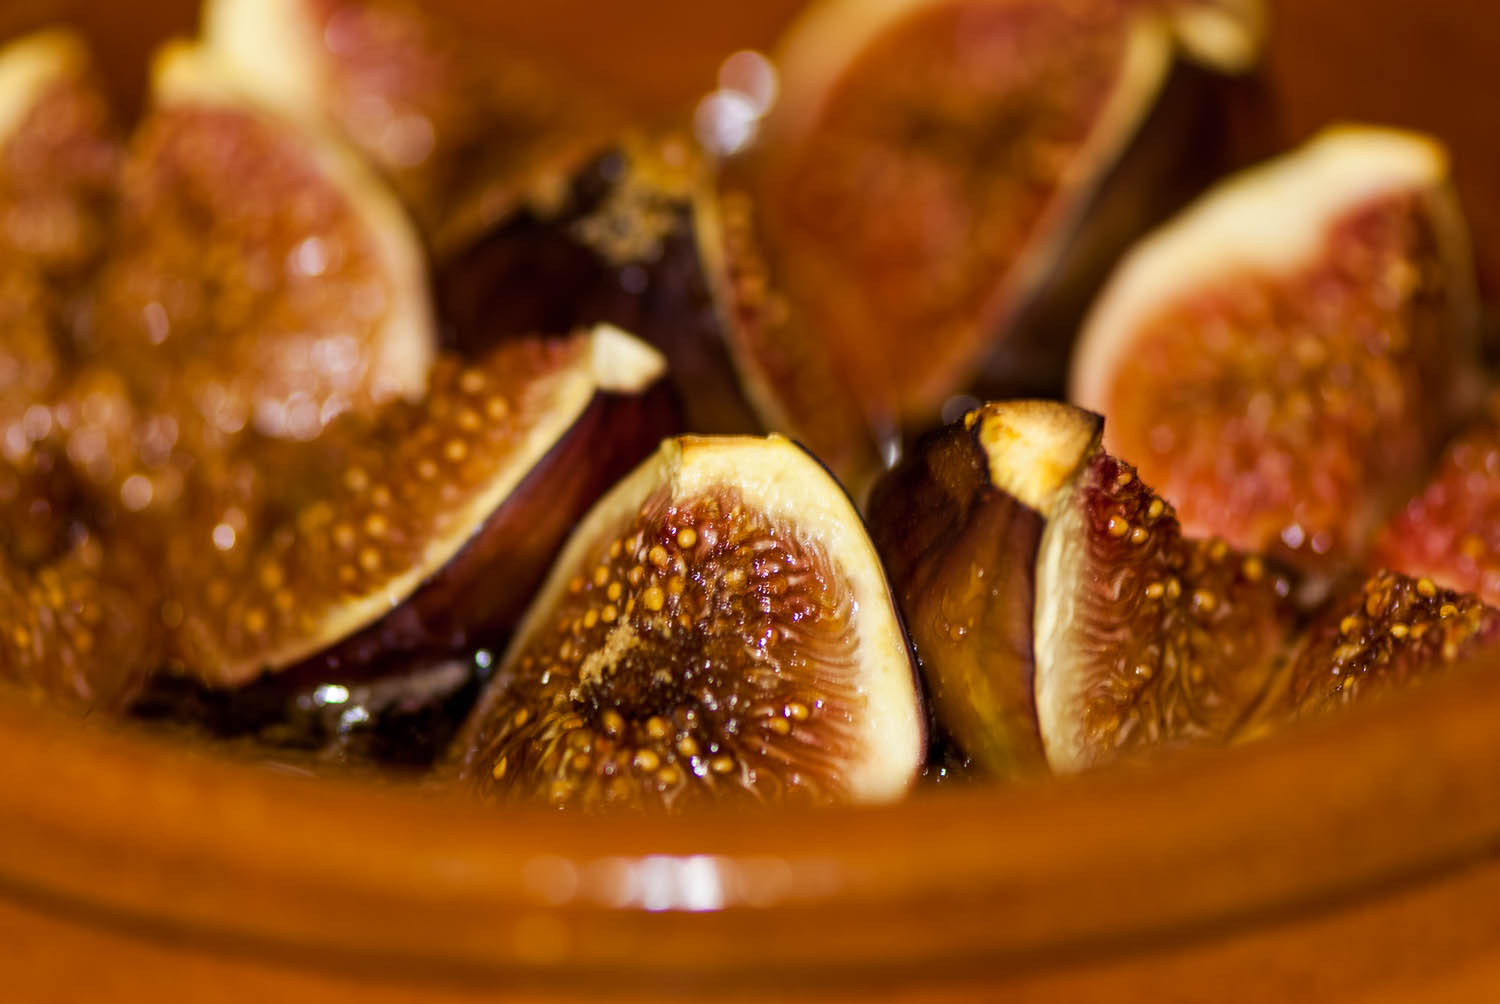 Figs coming out of the oven